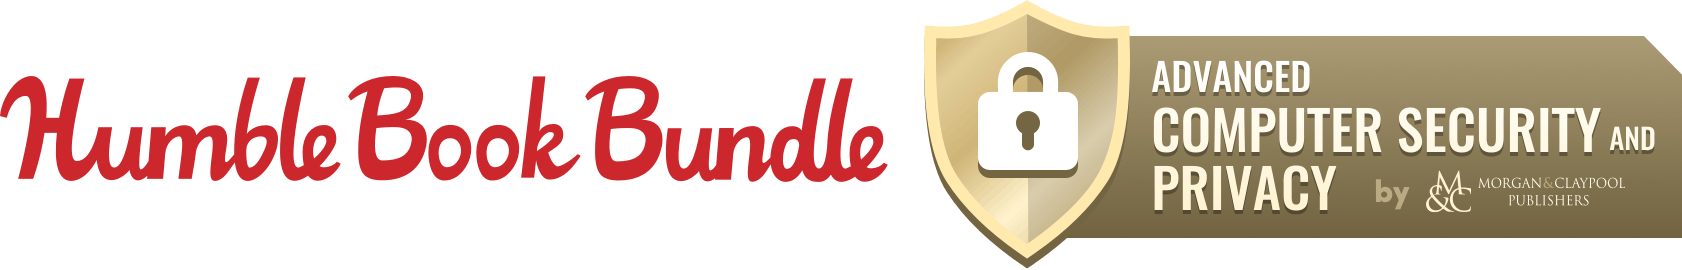 Humble Book Bundle: Advanced Computer Security and Privacy by Morgan & Claypool